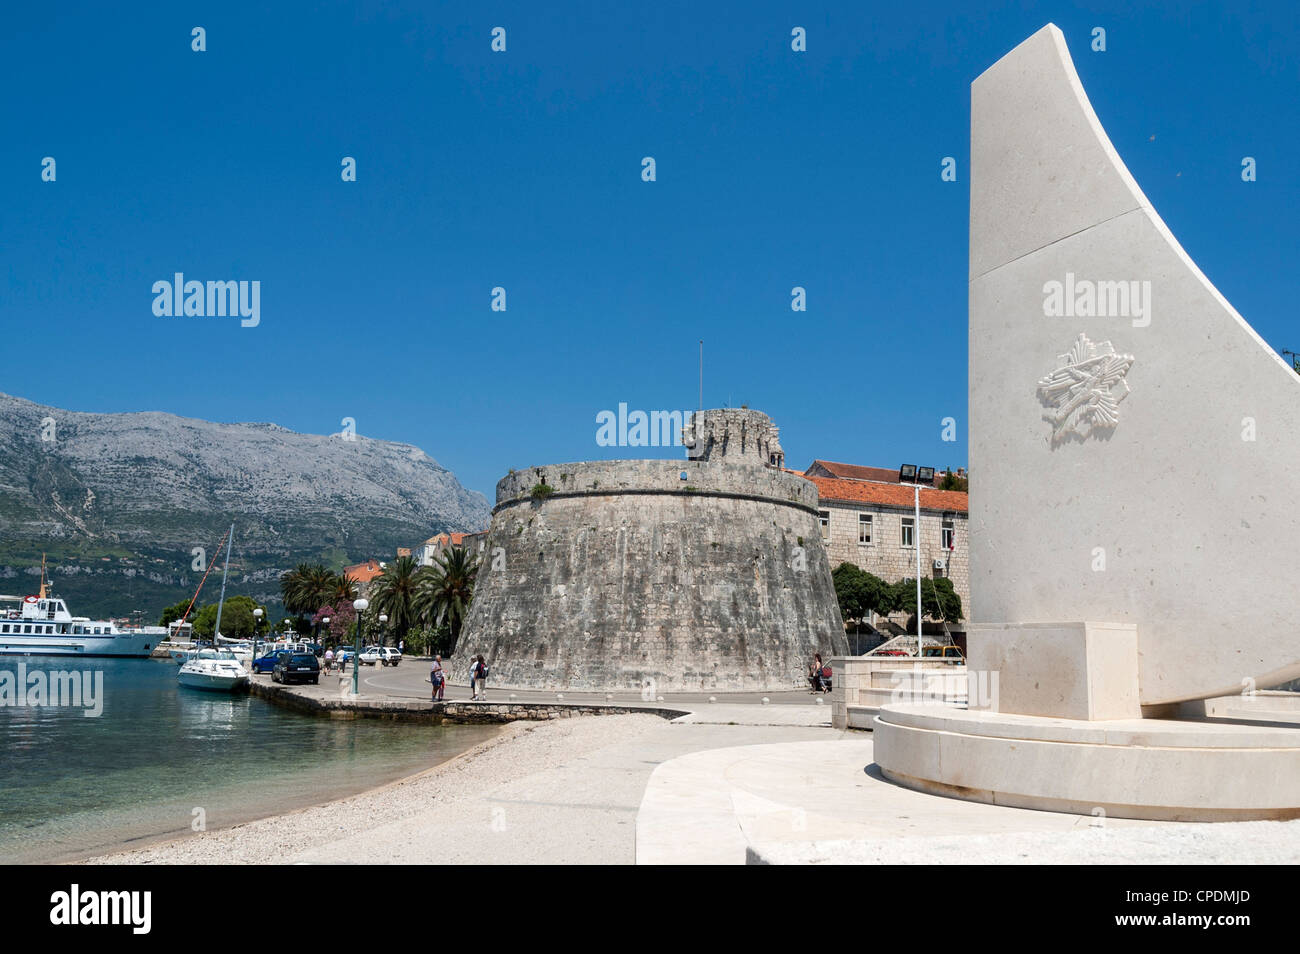 Beach and harbor at Korcula, Croatia, Europe - Stock Image